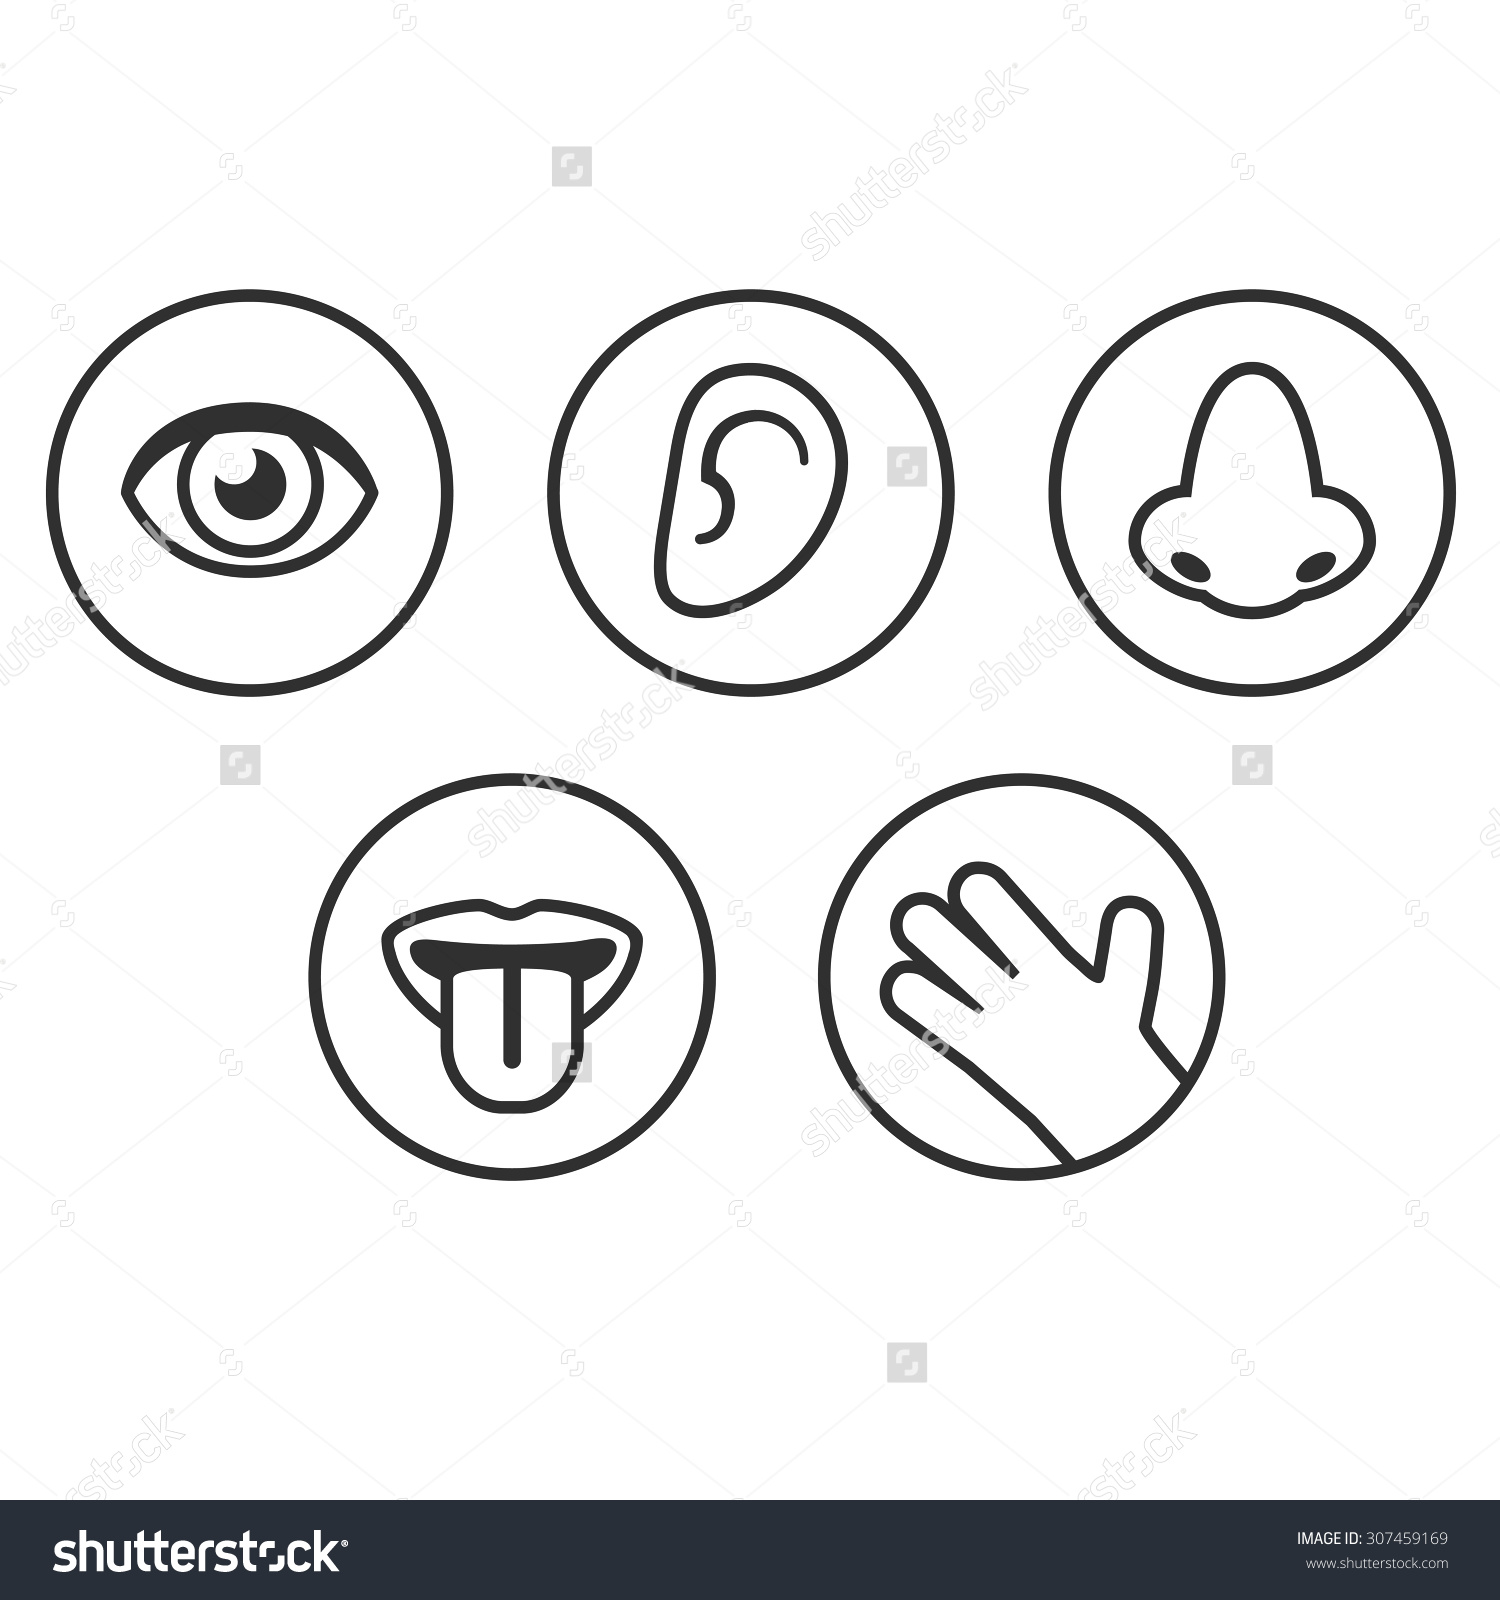 Five Senses Icons. Save To A Lightbox-Five senses icons. Save to a lightbox-12